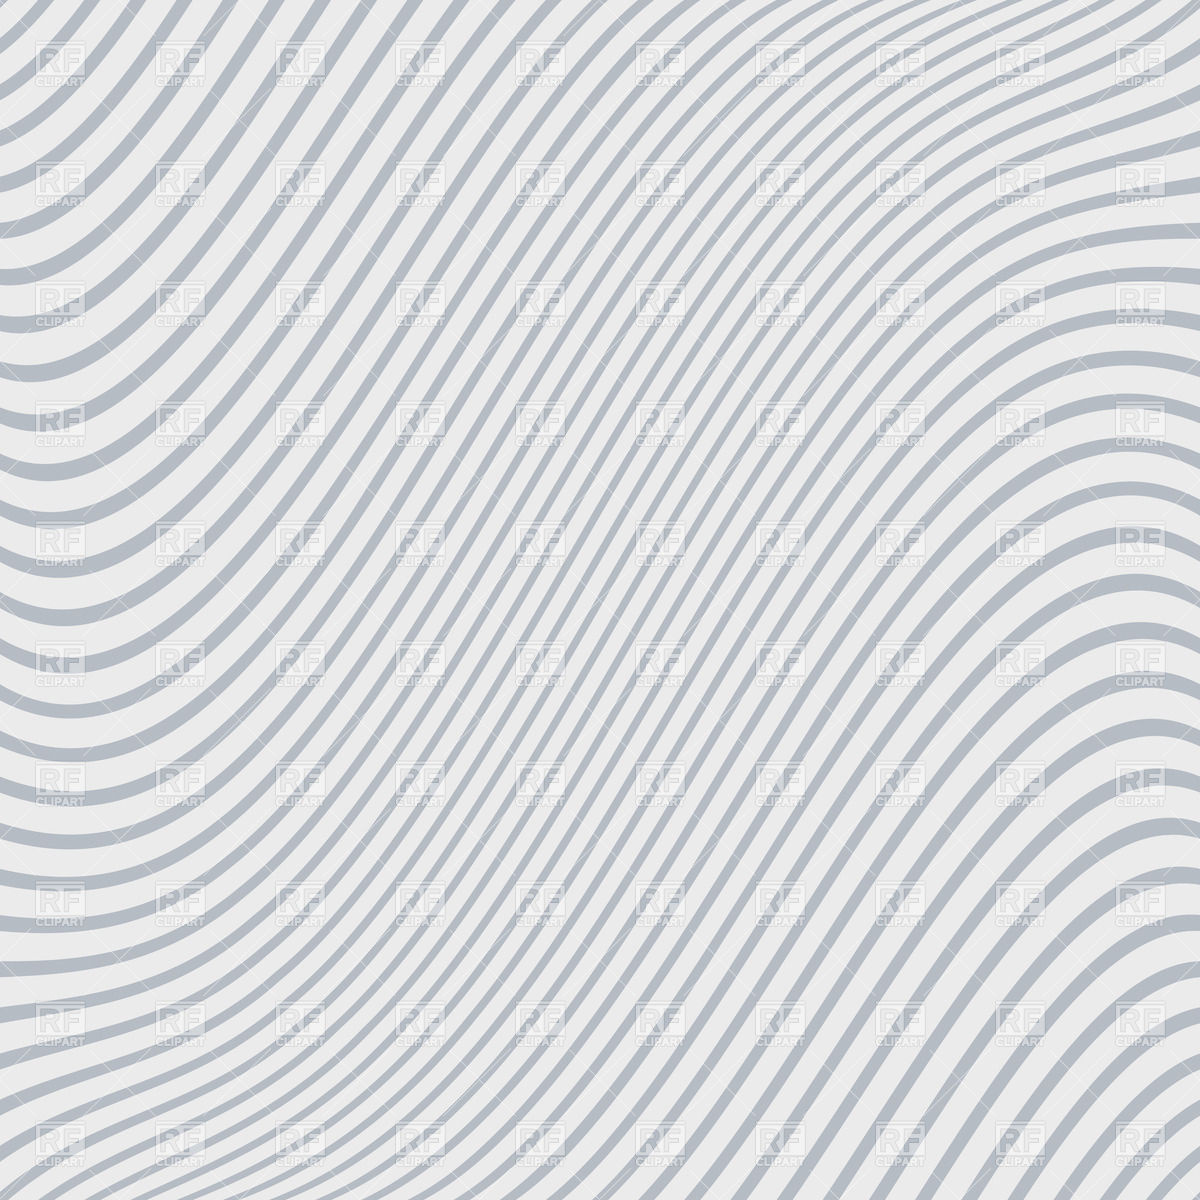 1200x1200 Abstract Background Of Grey Diagonal Wavy Lines Vector Image